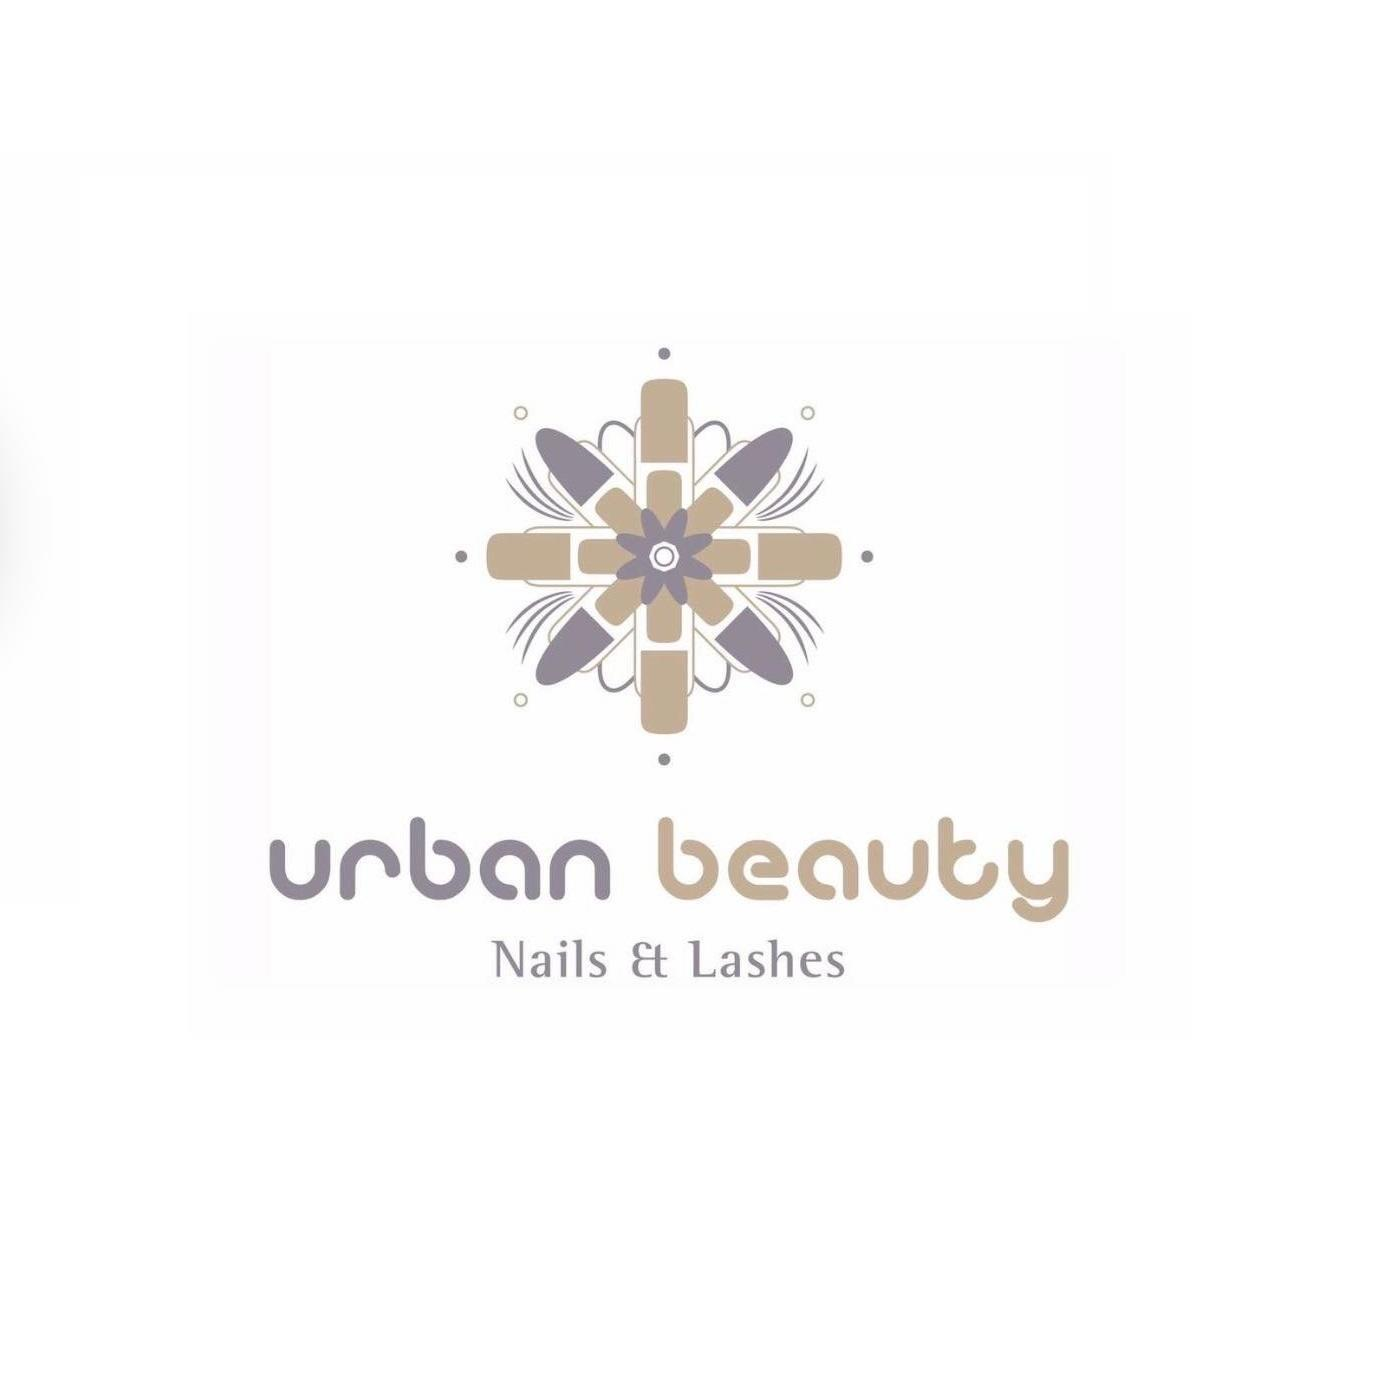 Logo von urban beauty Nails & Lashes